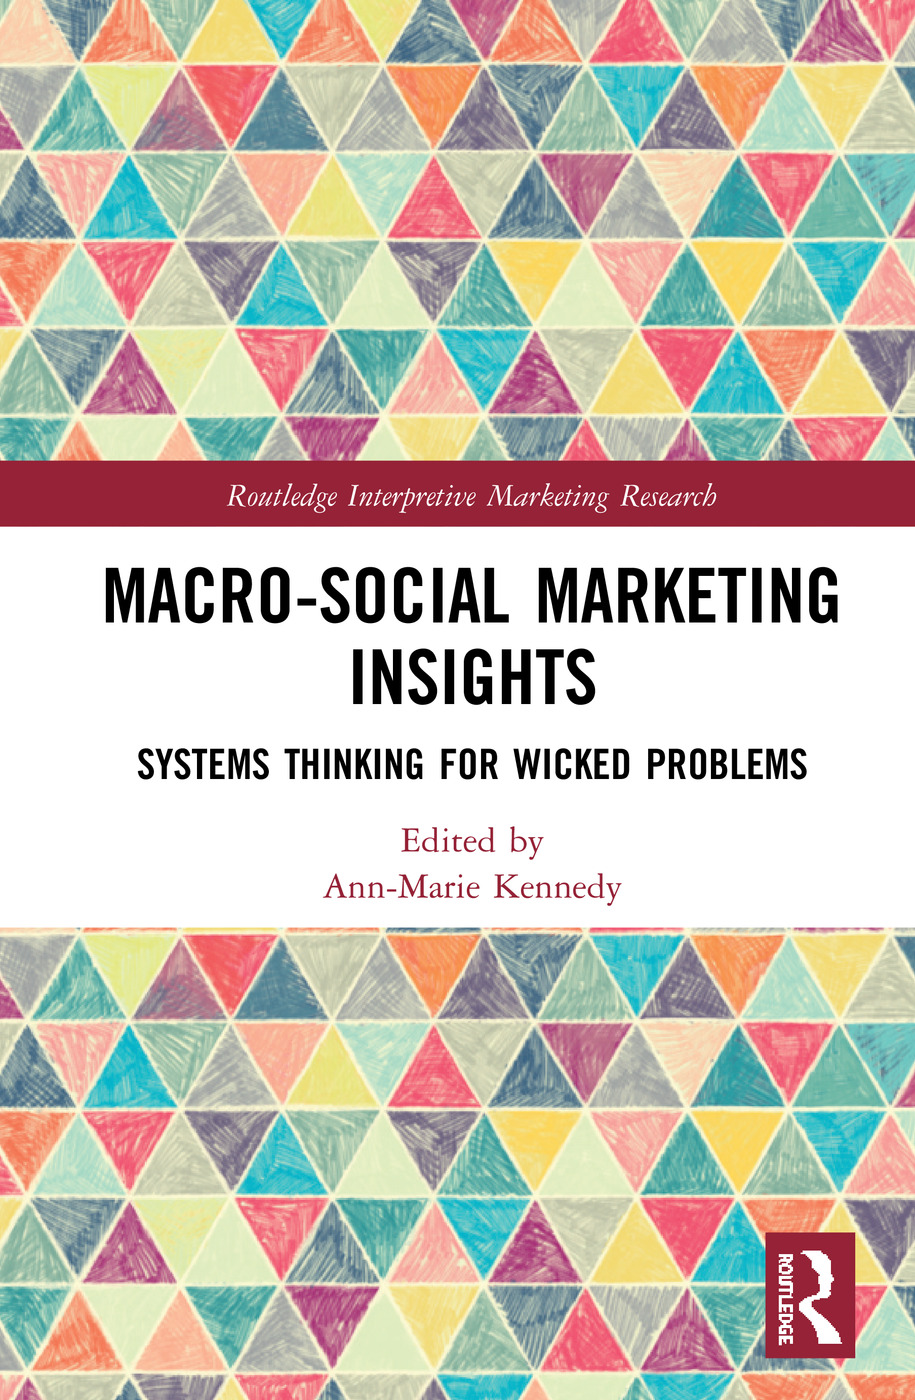 Macro-Social Marketing Insights: Systems Thinking for Wicked Problems book cover